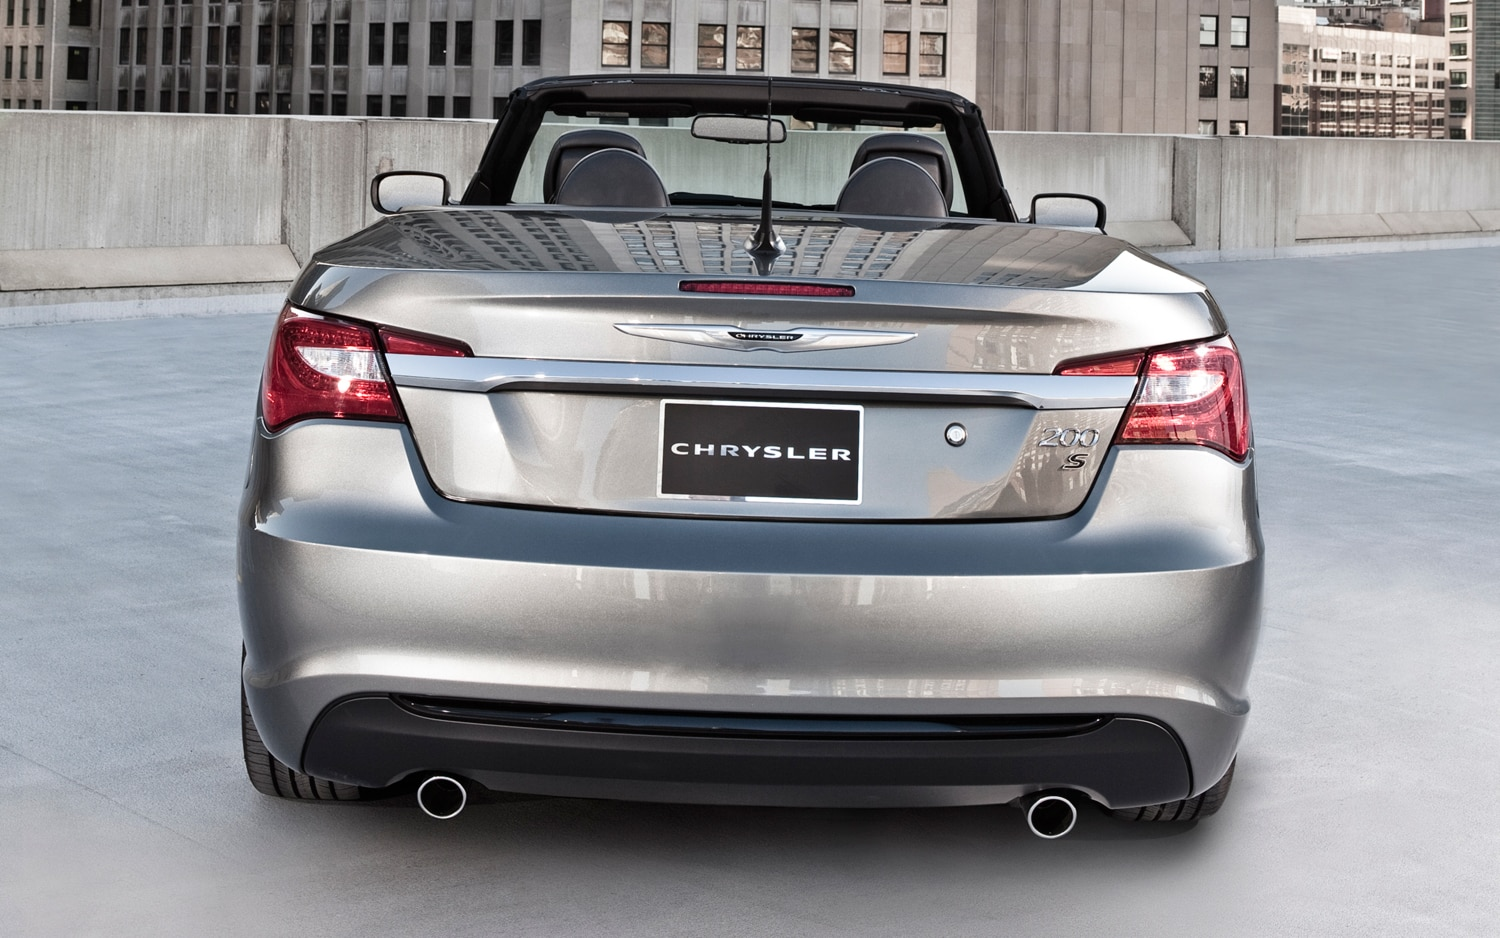 chrysler leaked for rhd price convertible no australia sebring plans caradvice cabrio